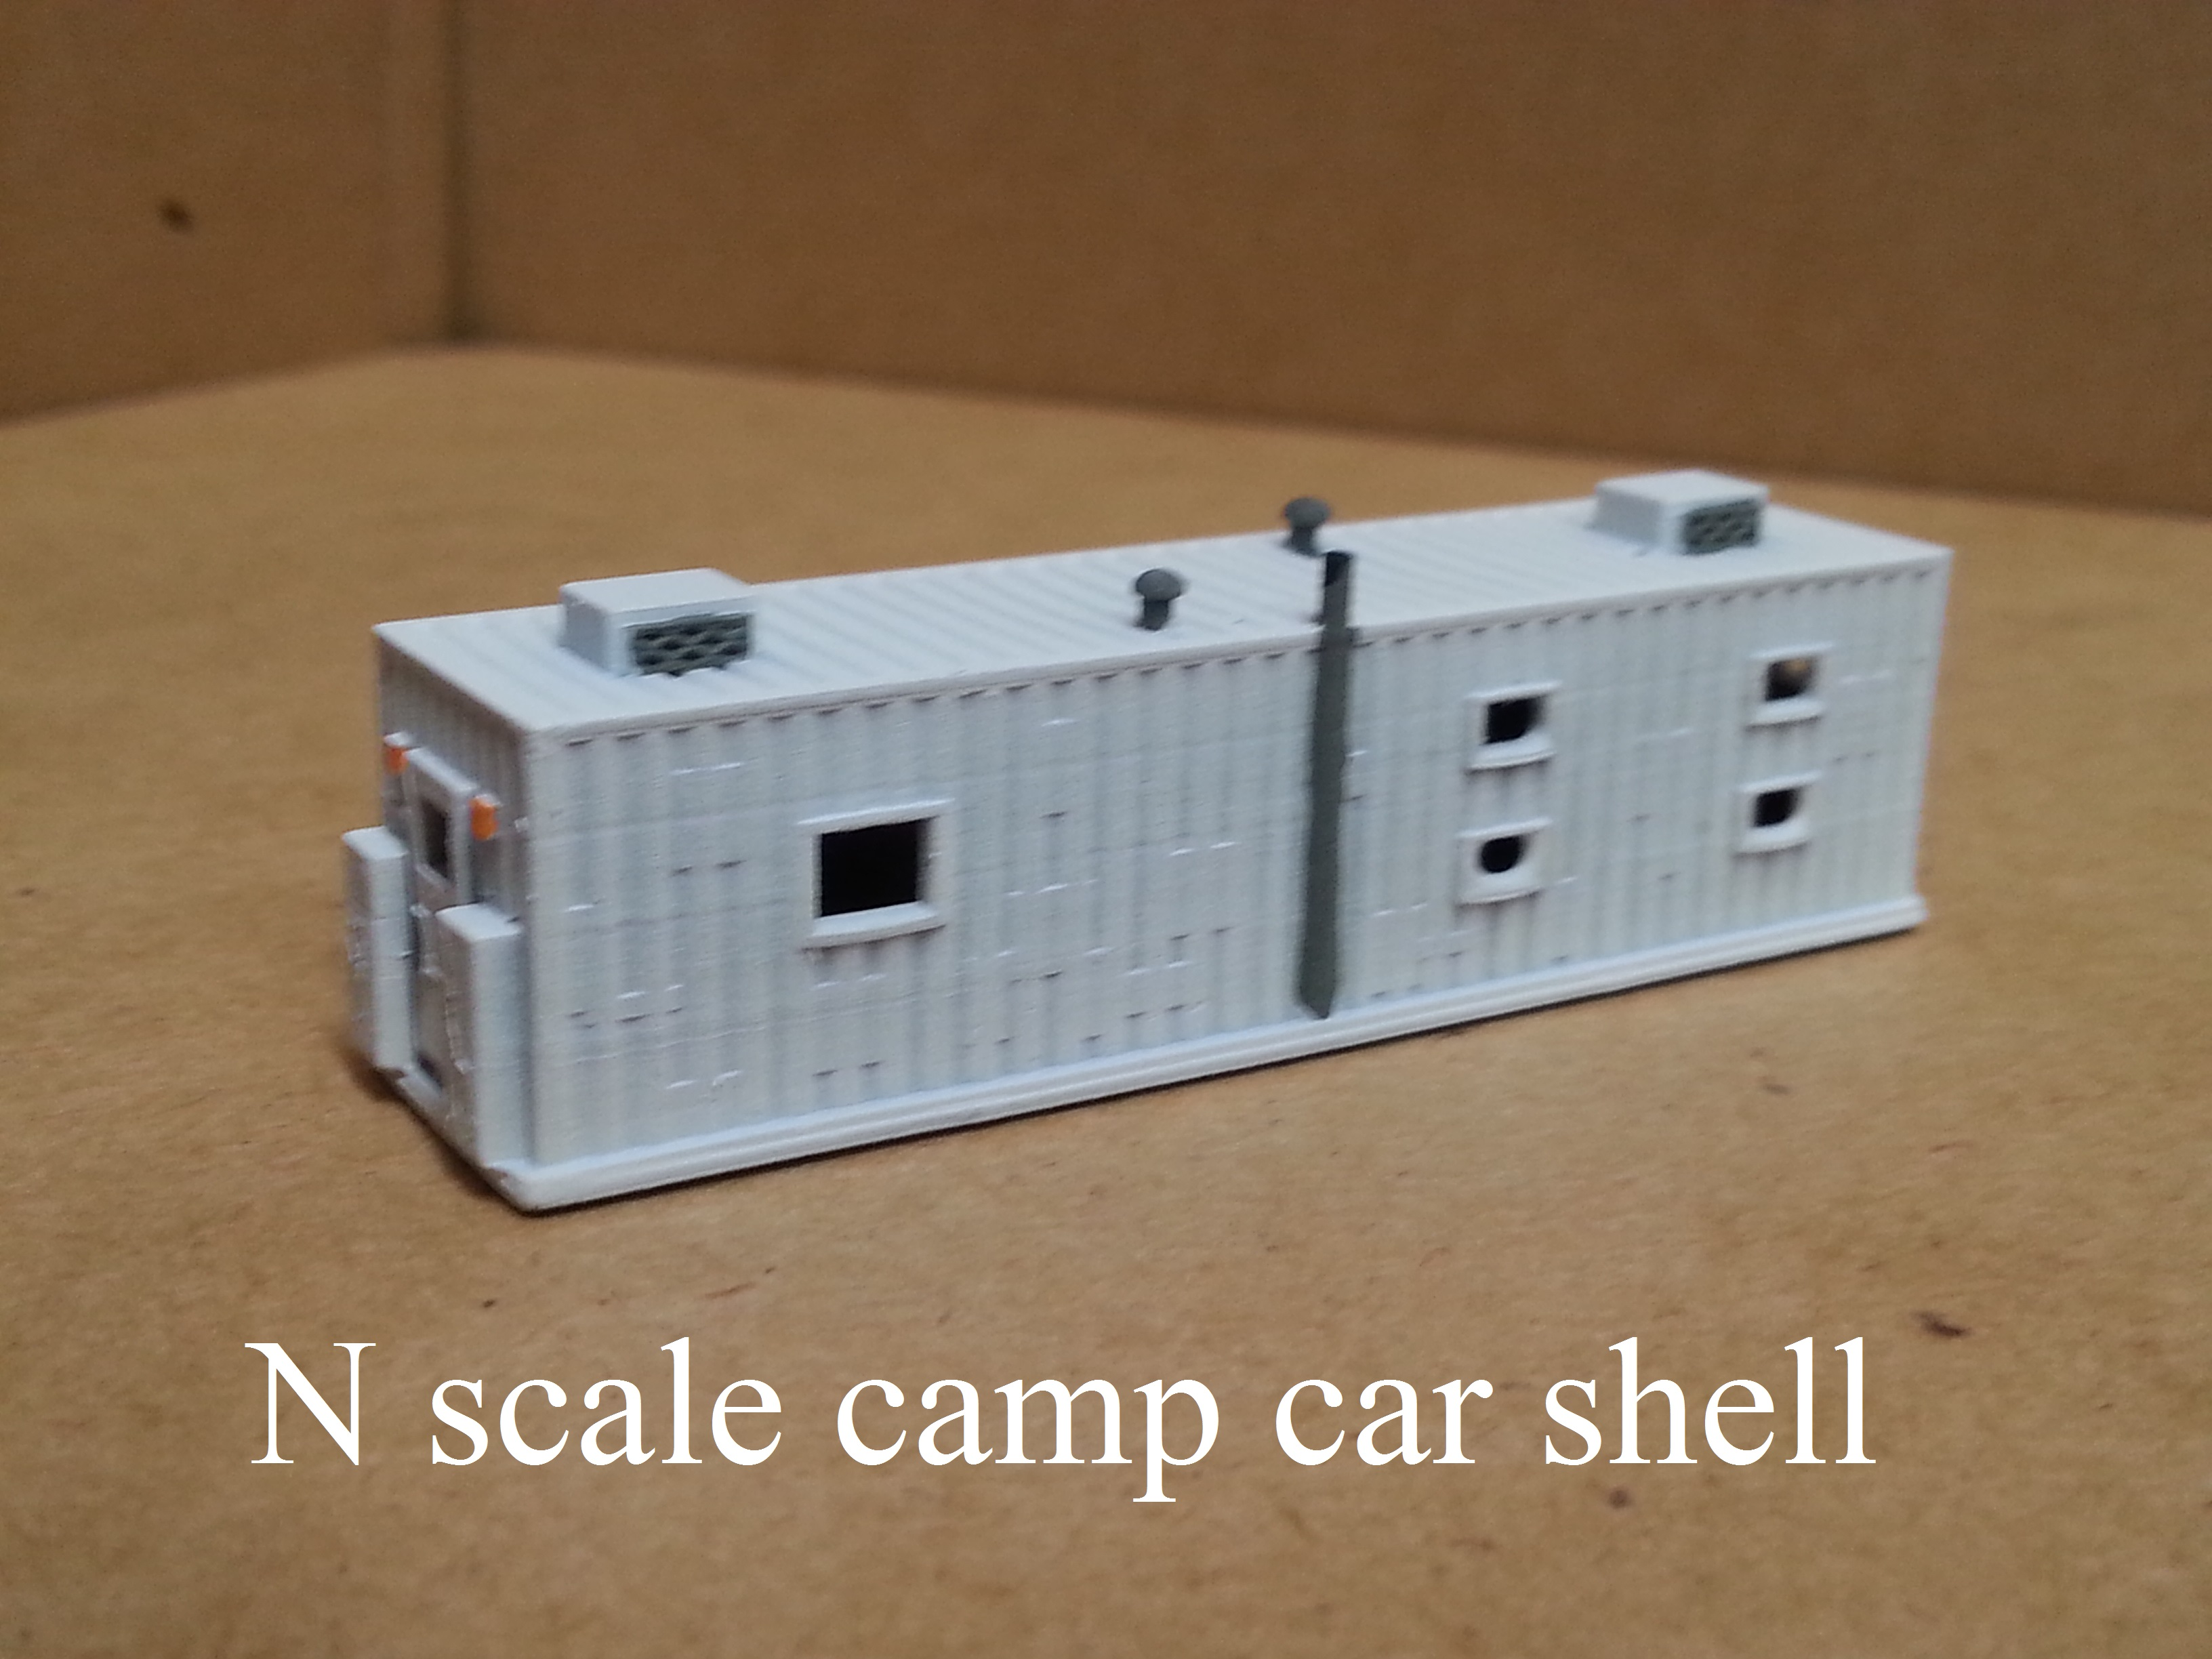 N scale M of W Camp car shell